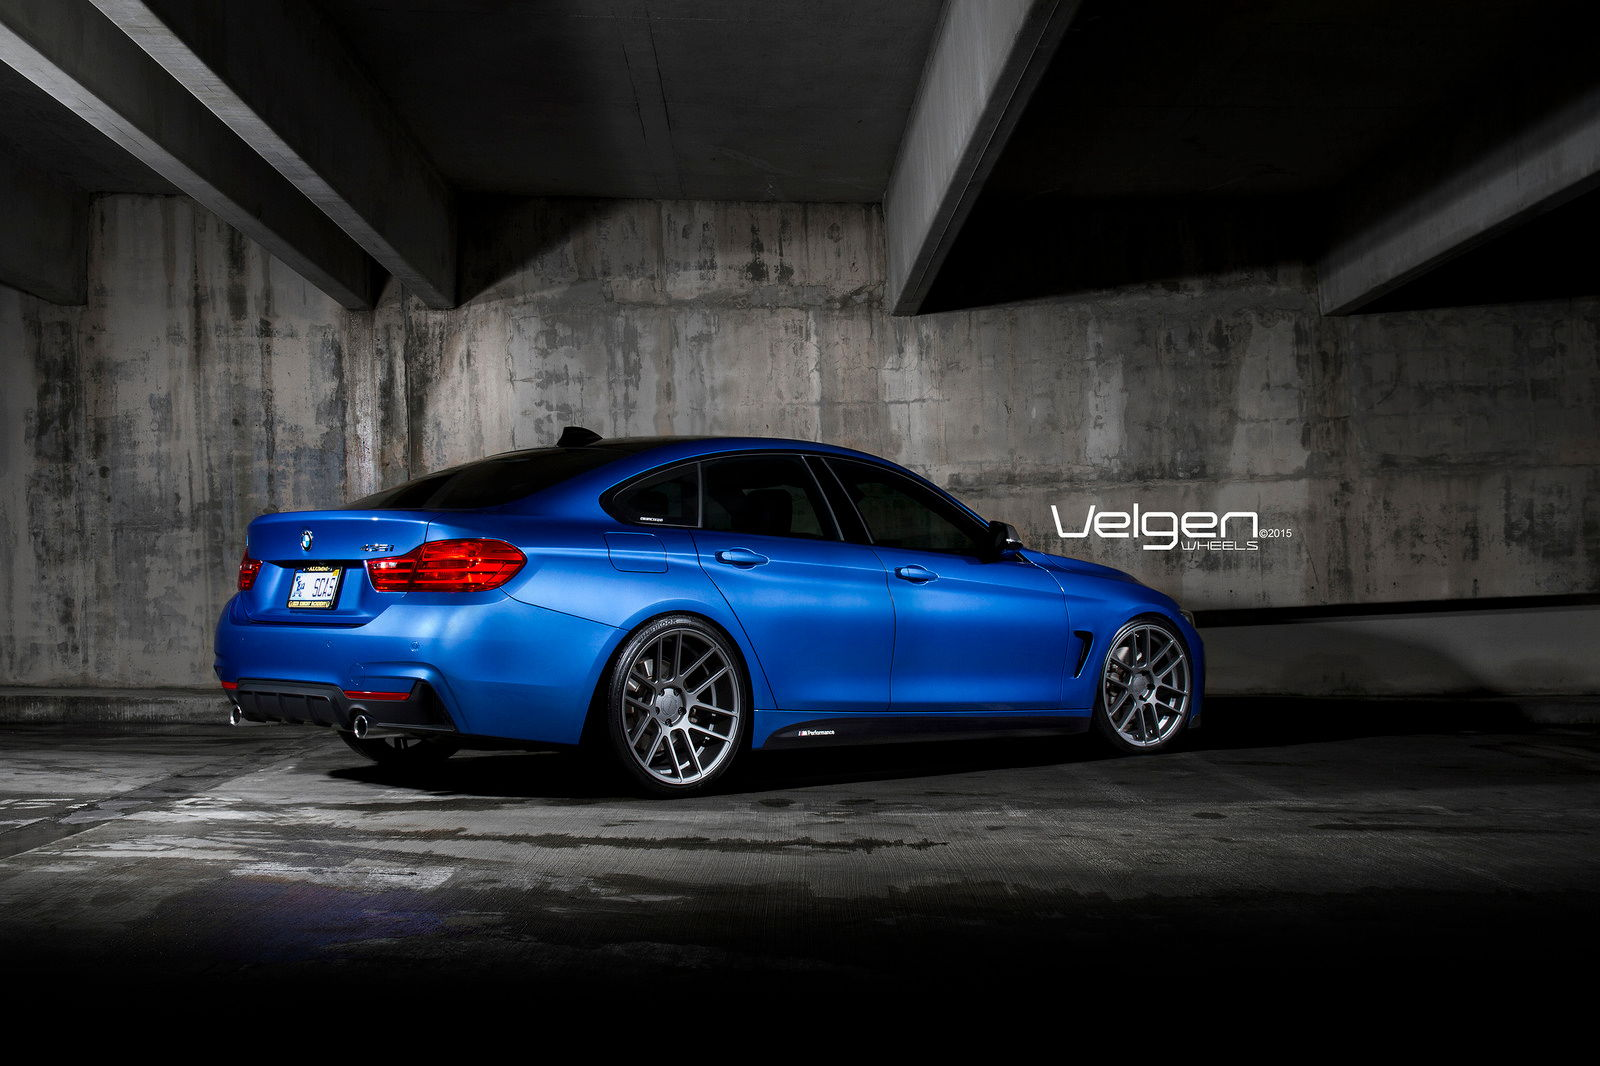 BMW I Gran Coupe On Velgen Wheels - Bmw 4351 coupe